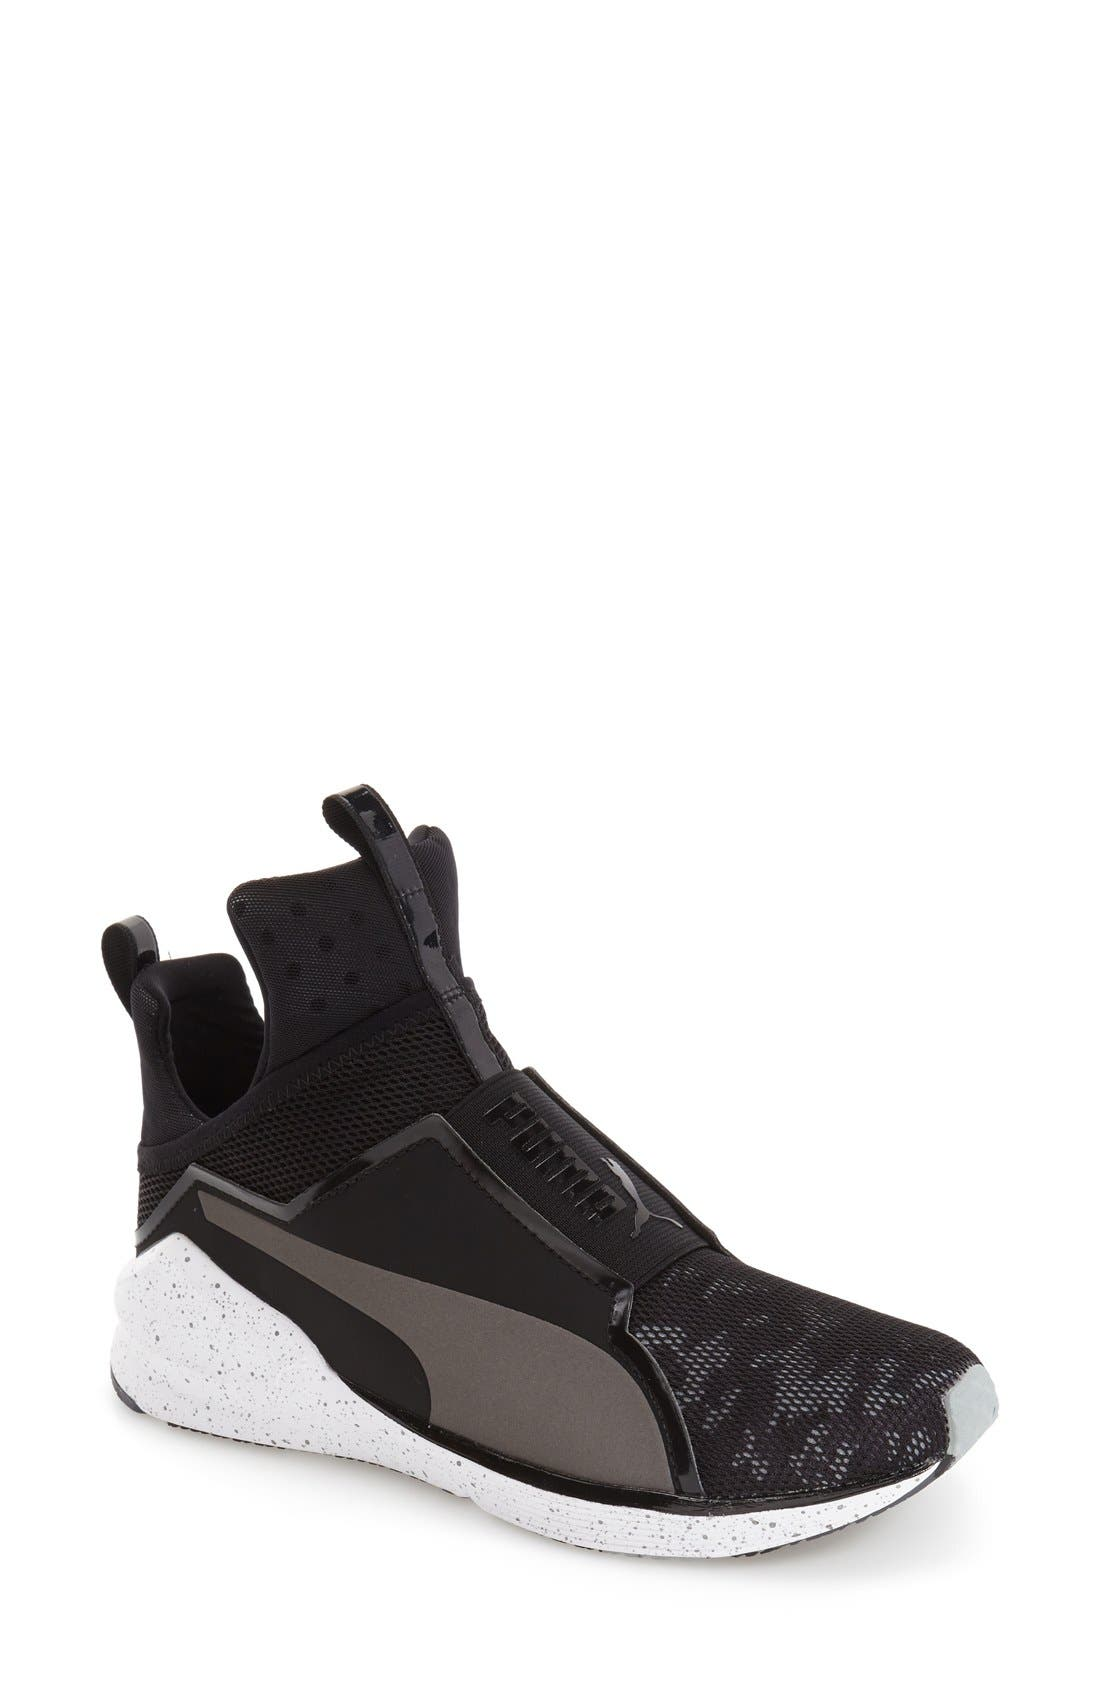 Alternate Image 1 Selected - PUMA 'Fierce Camo' Training Sneaker (Women)